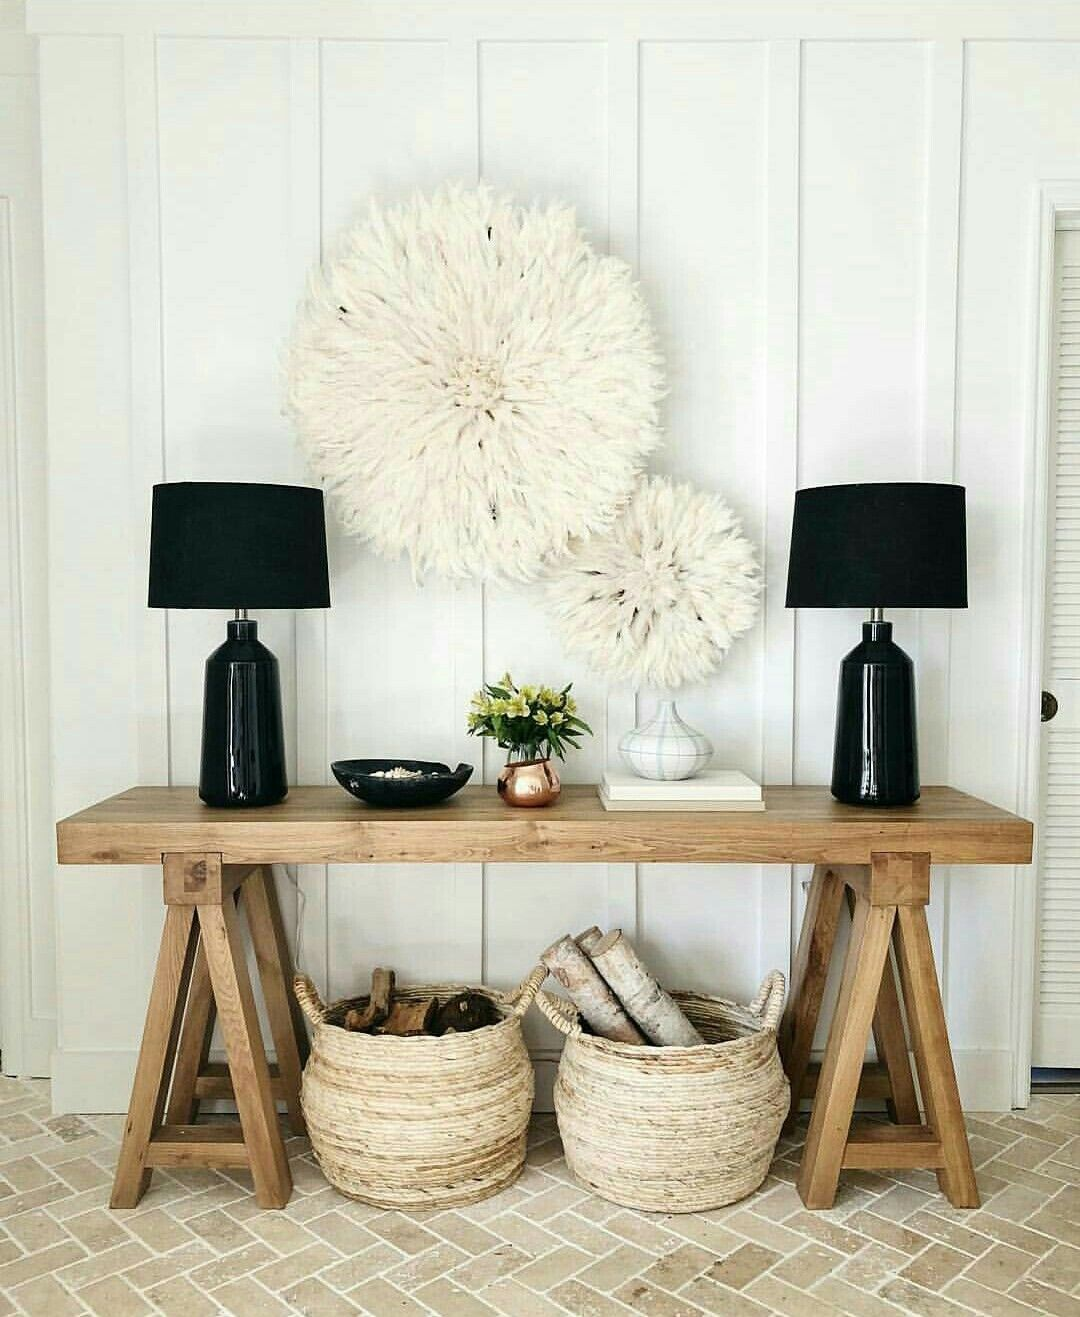 Pin de beautiful things en deco stile pinterest for Aterrizaje del corredor de entrada deco